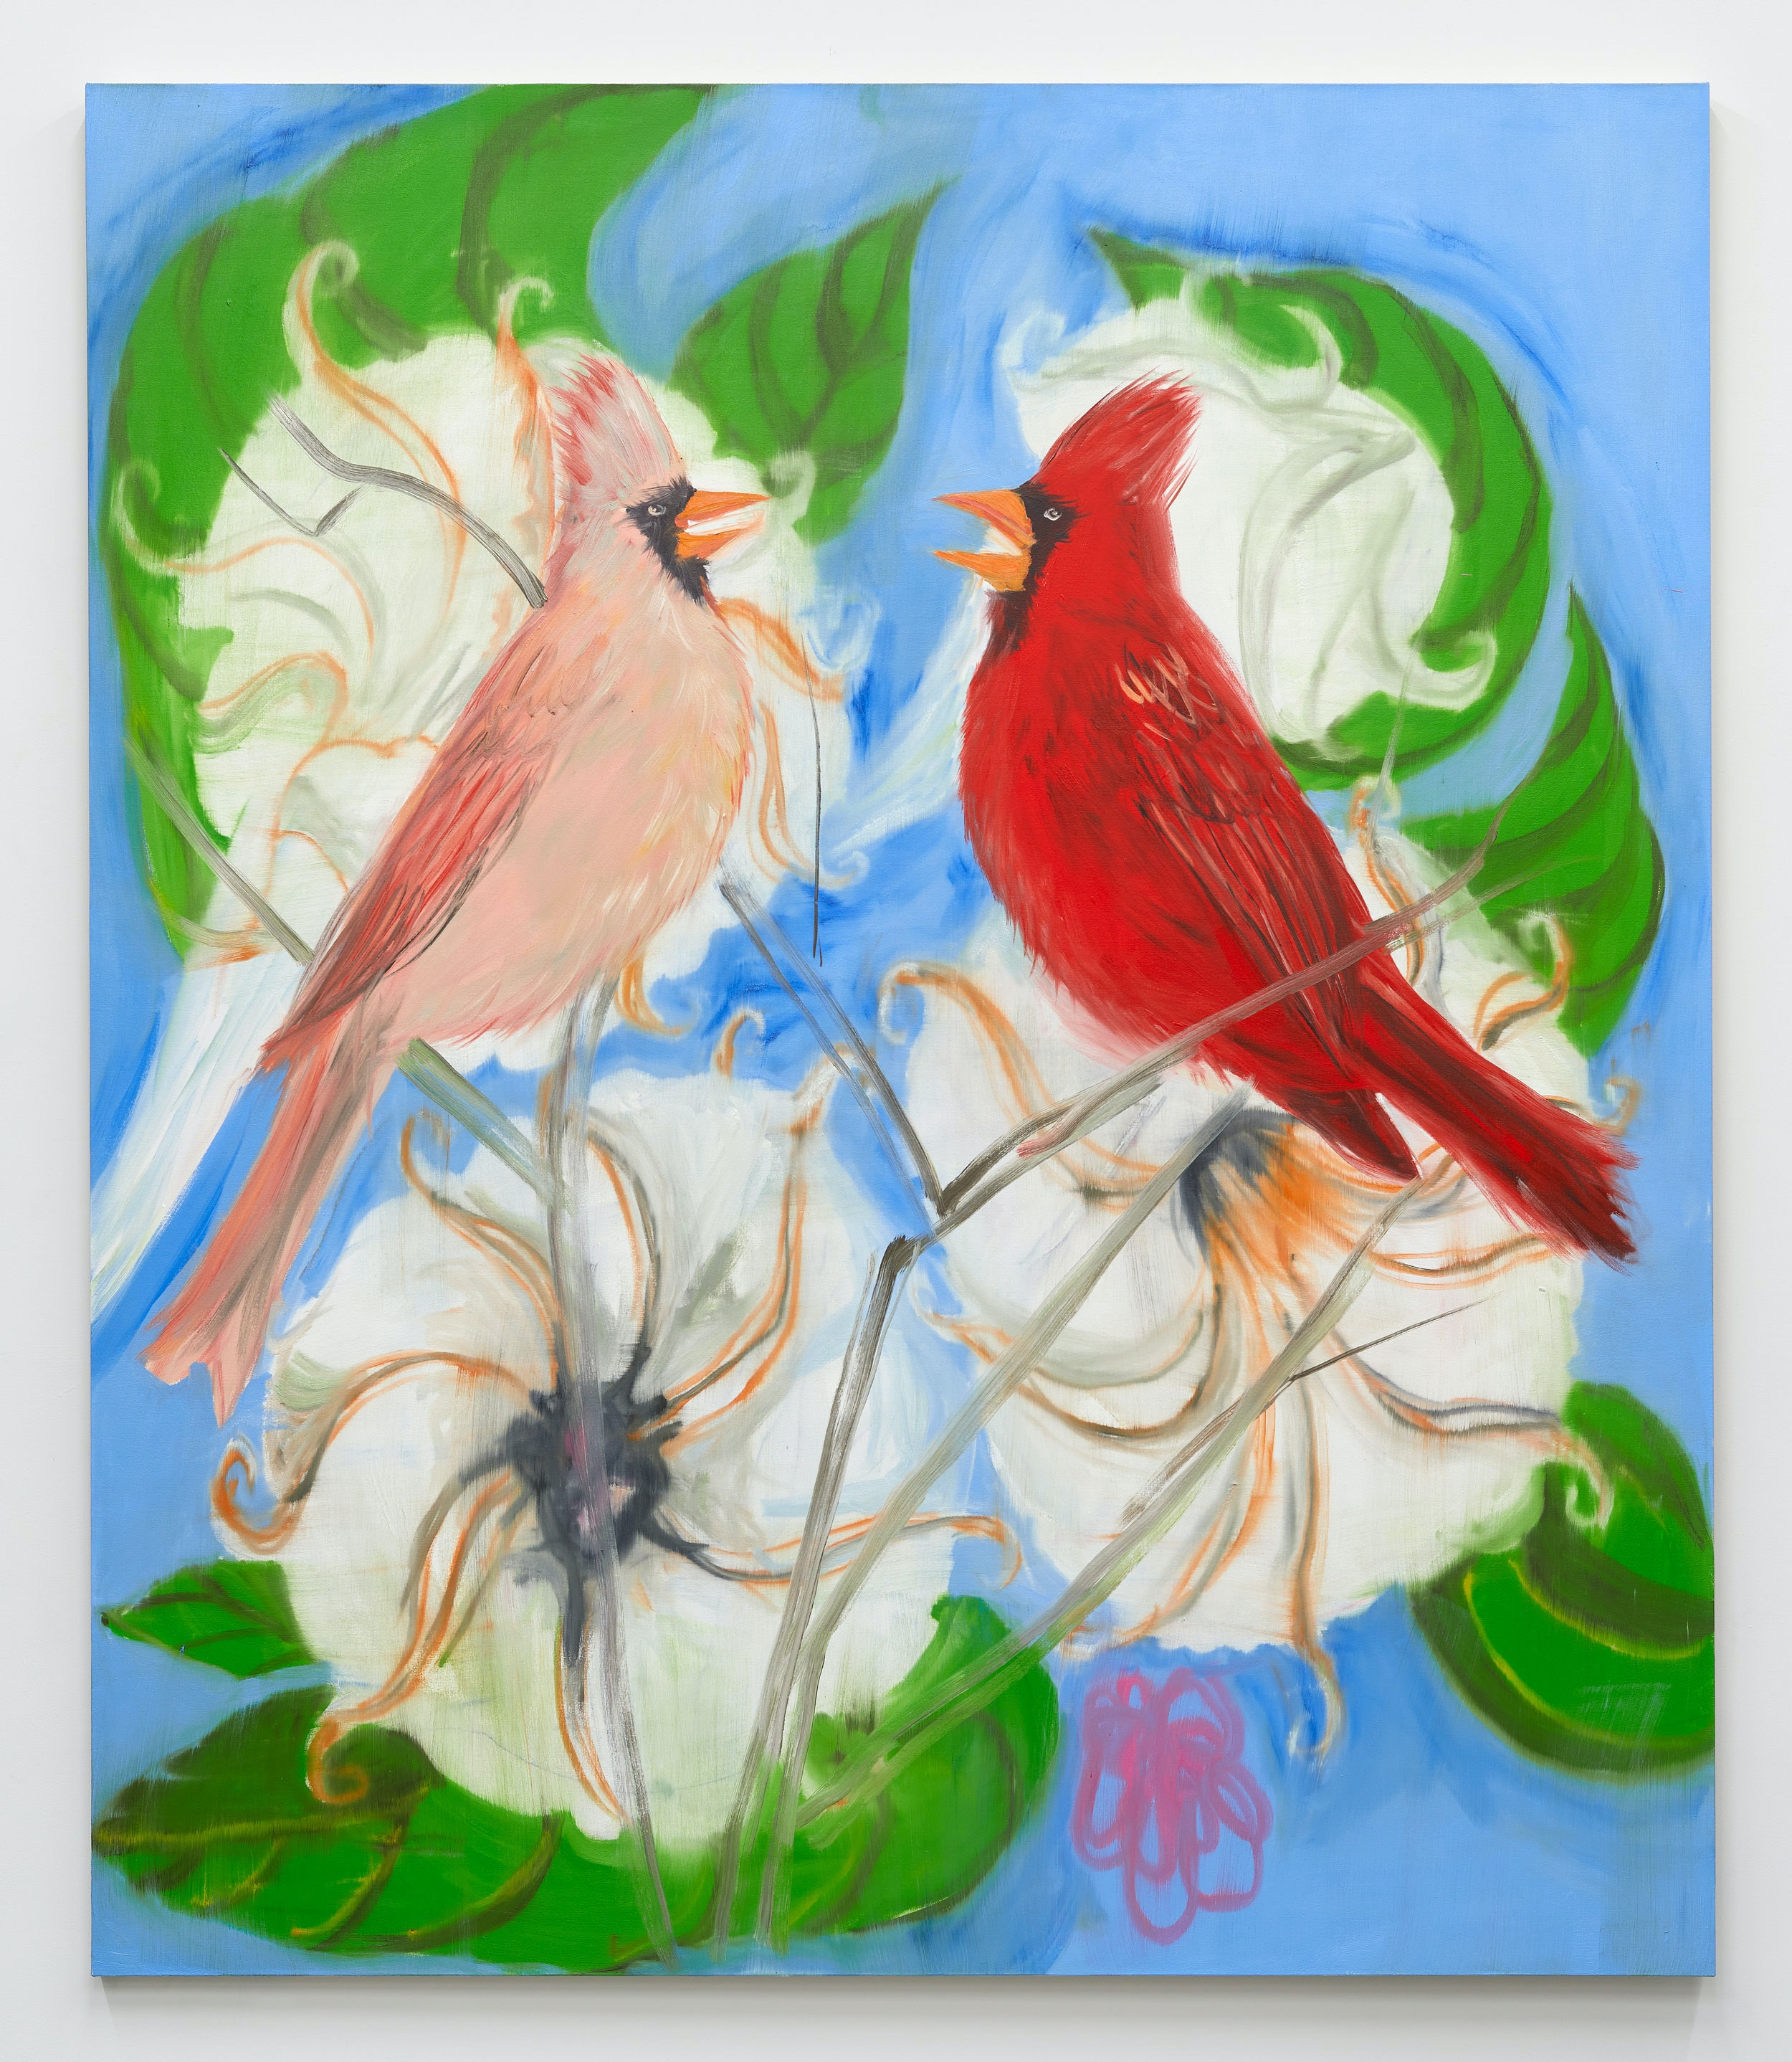 Ann Craven, <em>Portrait of Two Cardinals (after Picabia), 2021</em>, 2021. Oil on canvas, 84 x 72 inches. Courtesy the artist and Karma, New York.